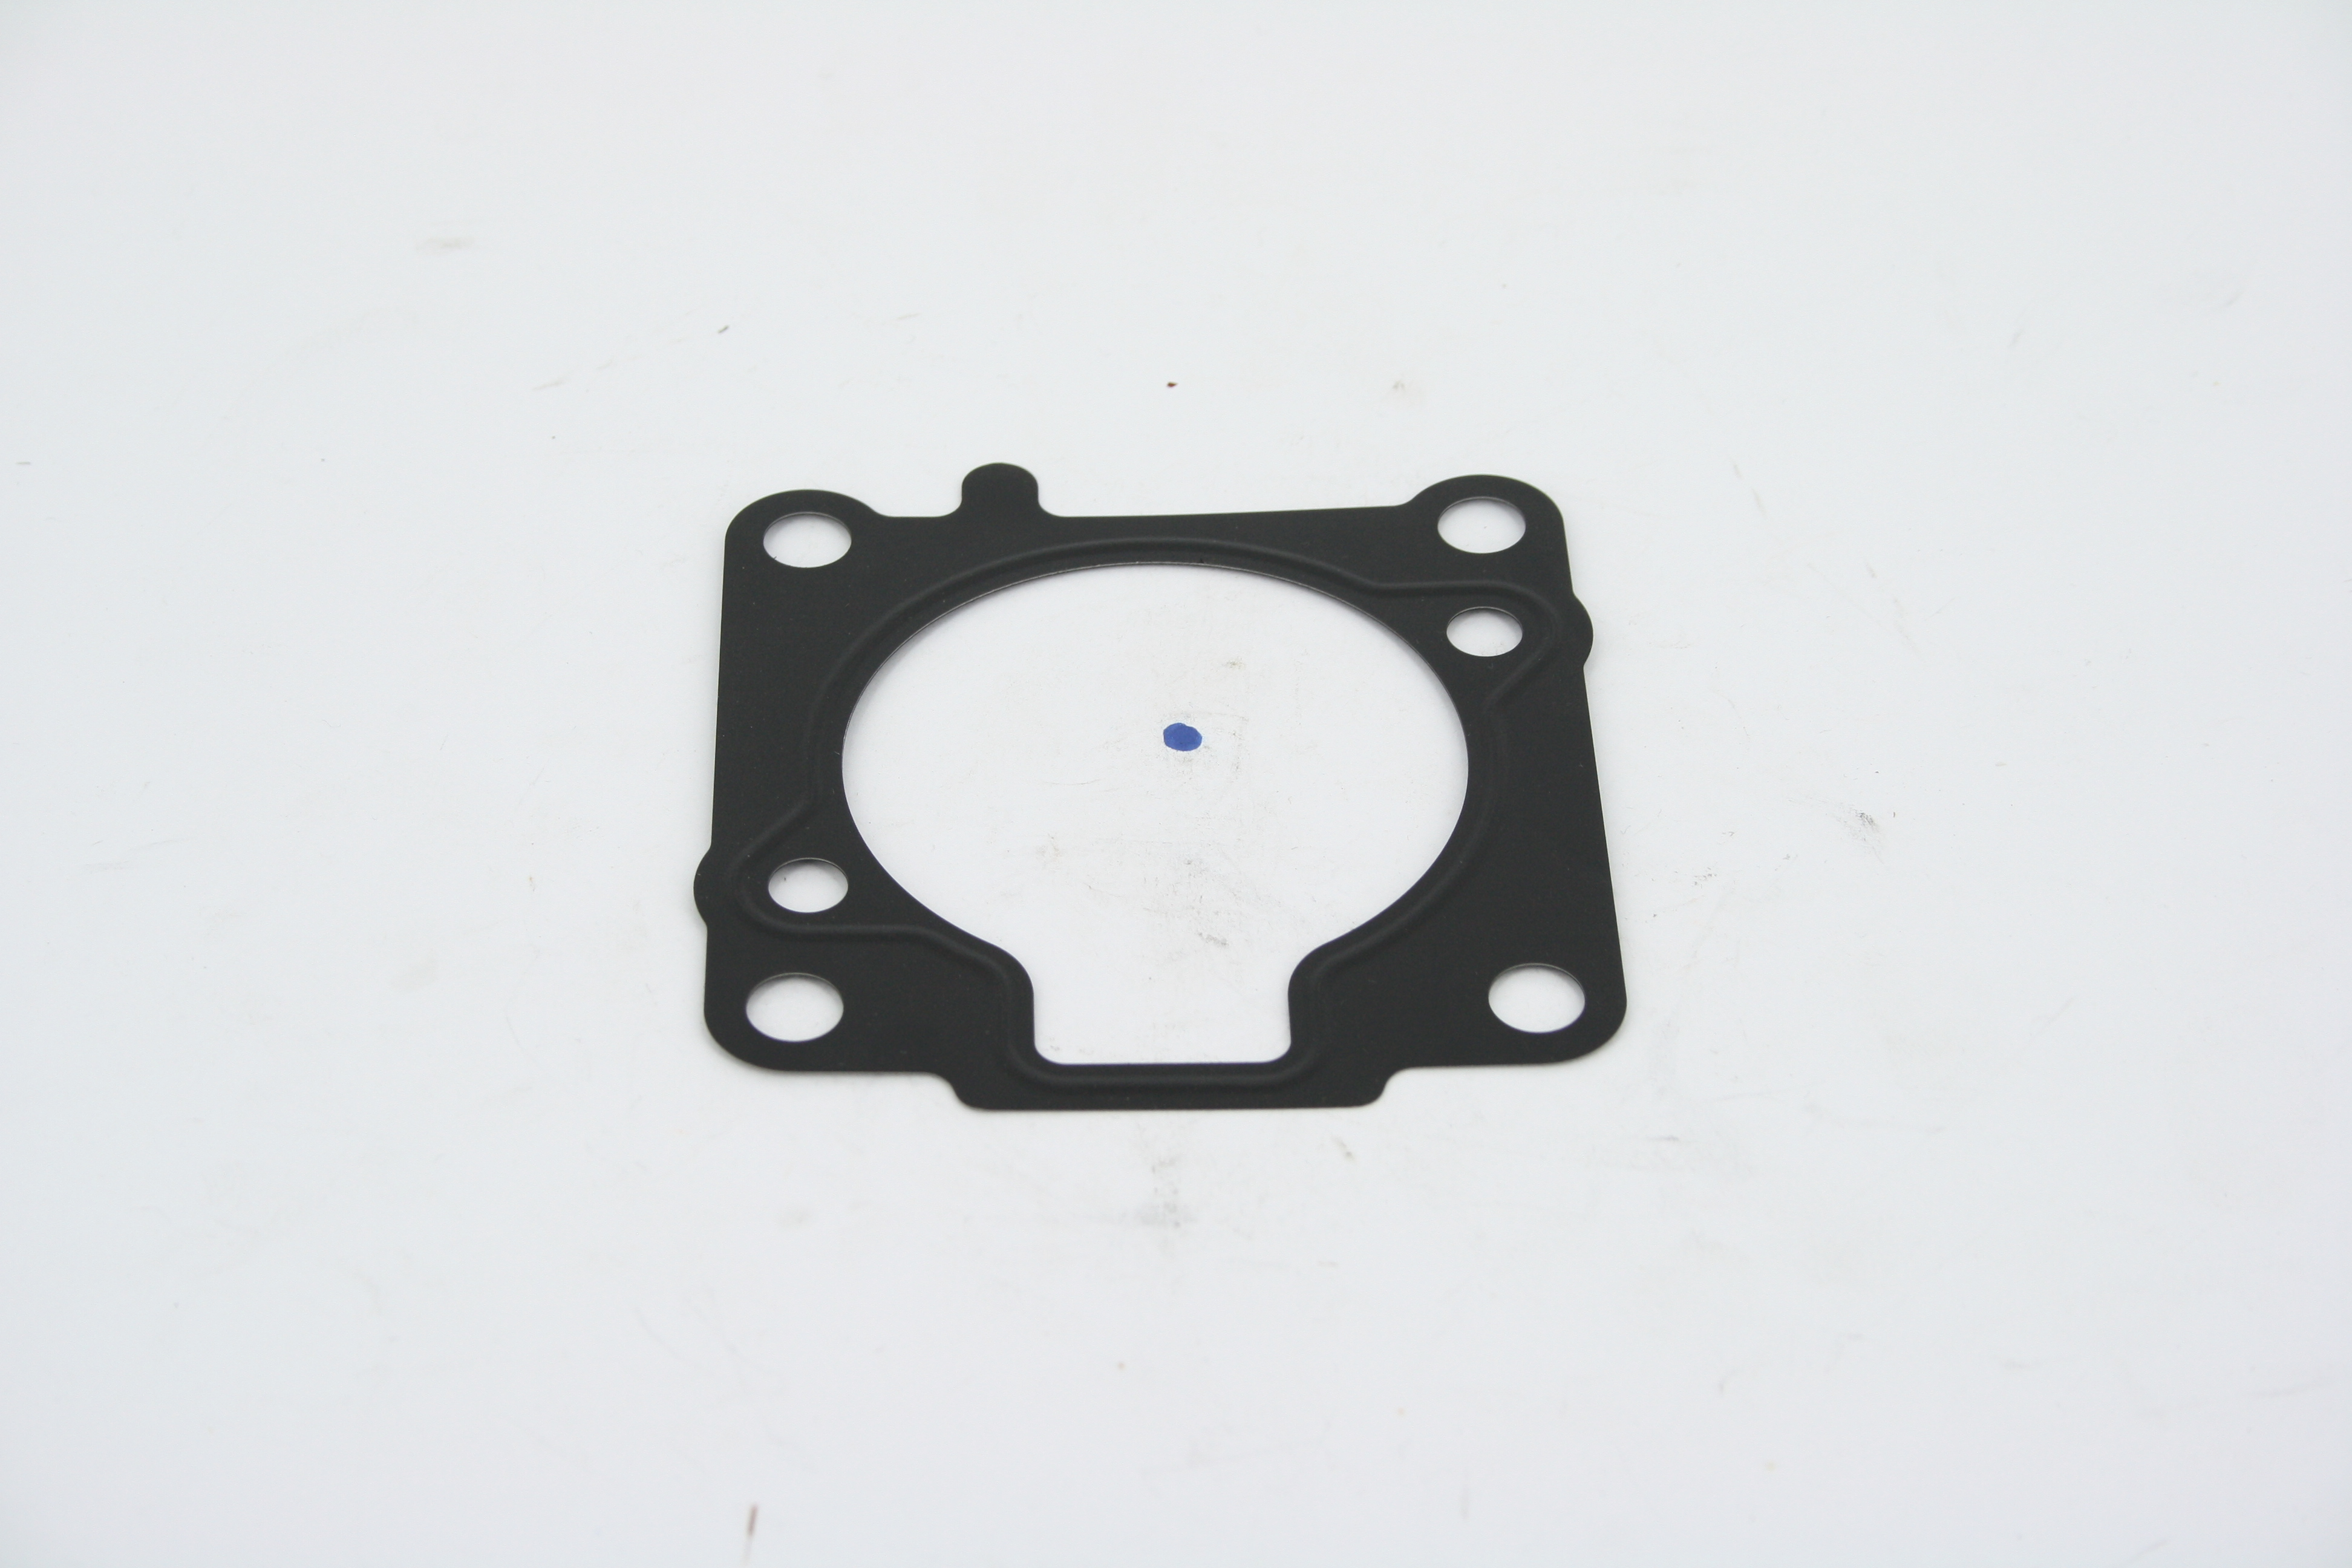 2012 subaru impreza engine cover